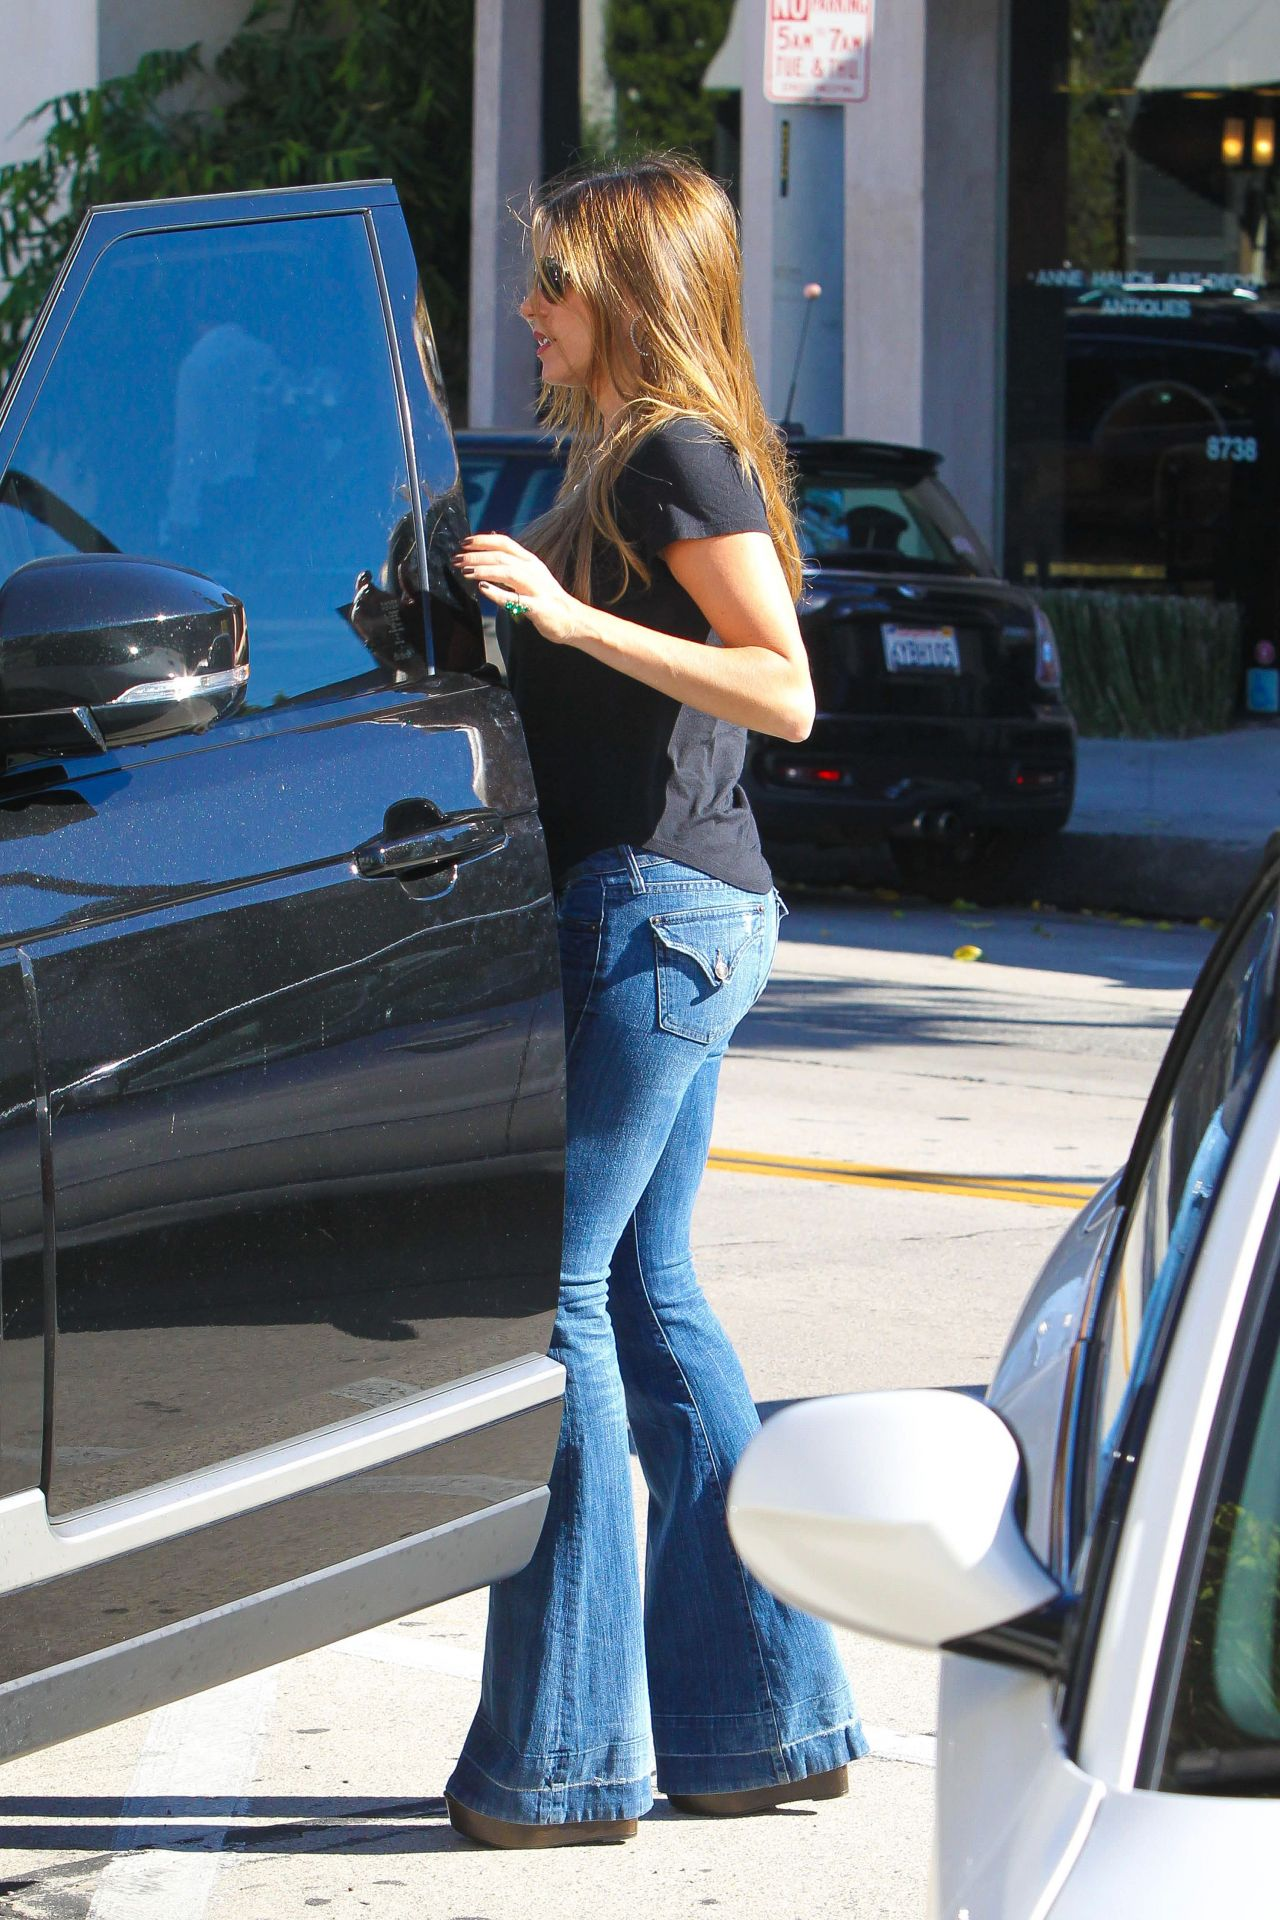 Sofia Vergara Booty In Jeans Shopping In Beverly Hills